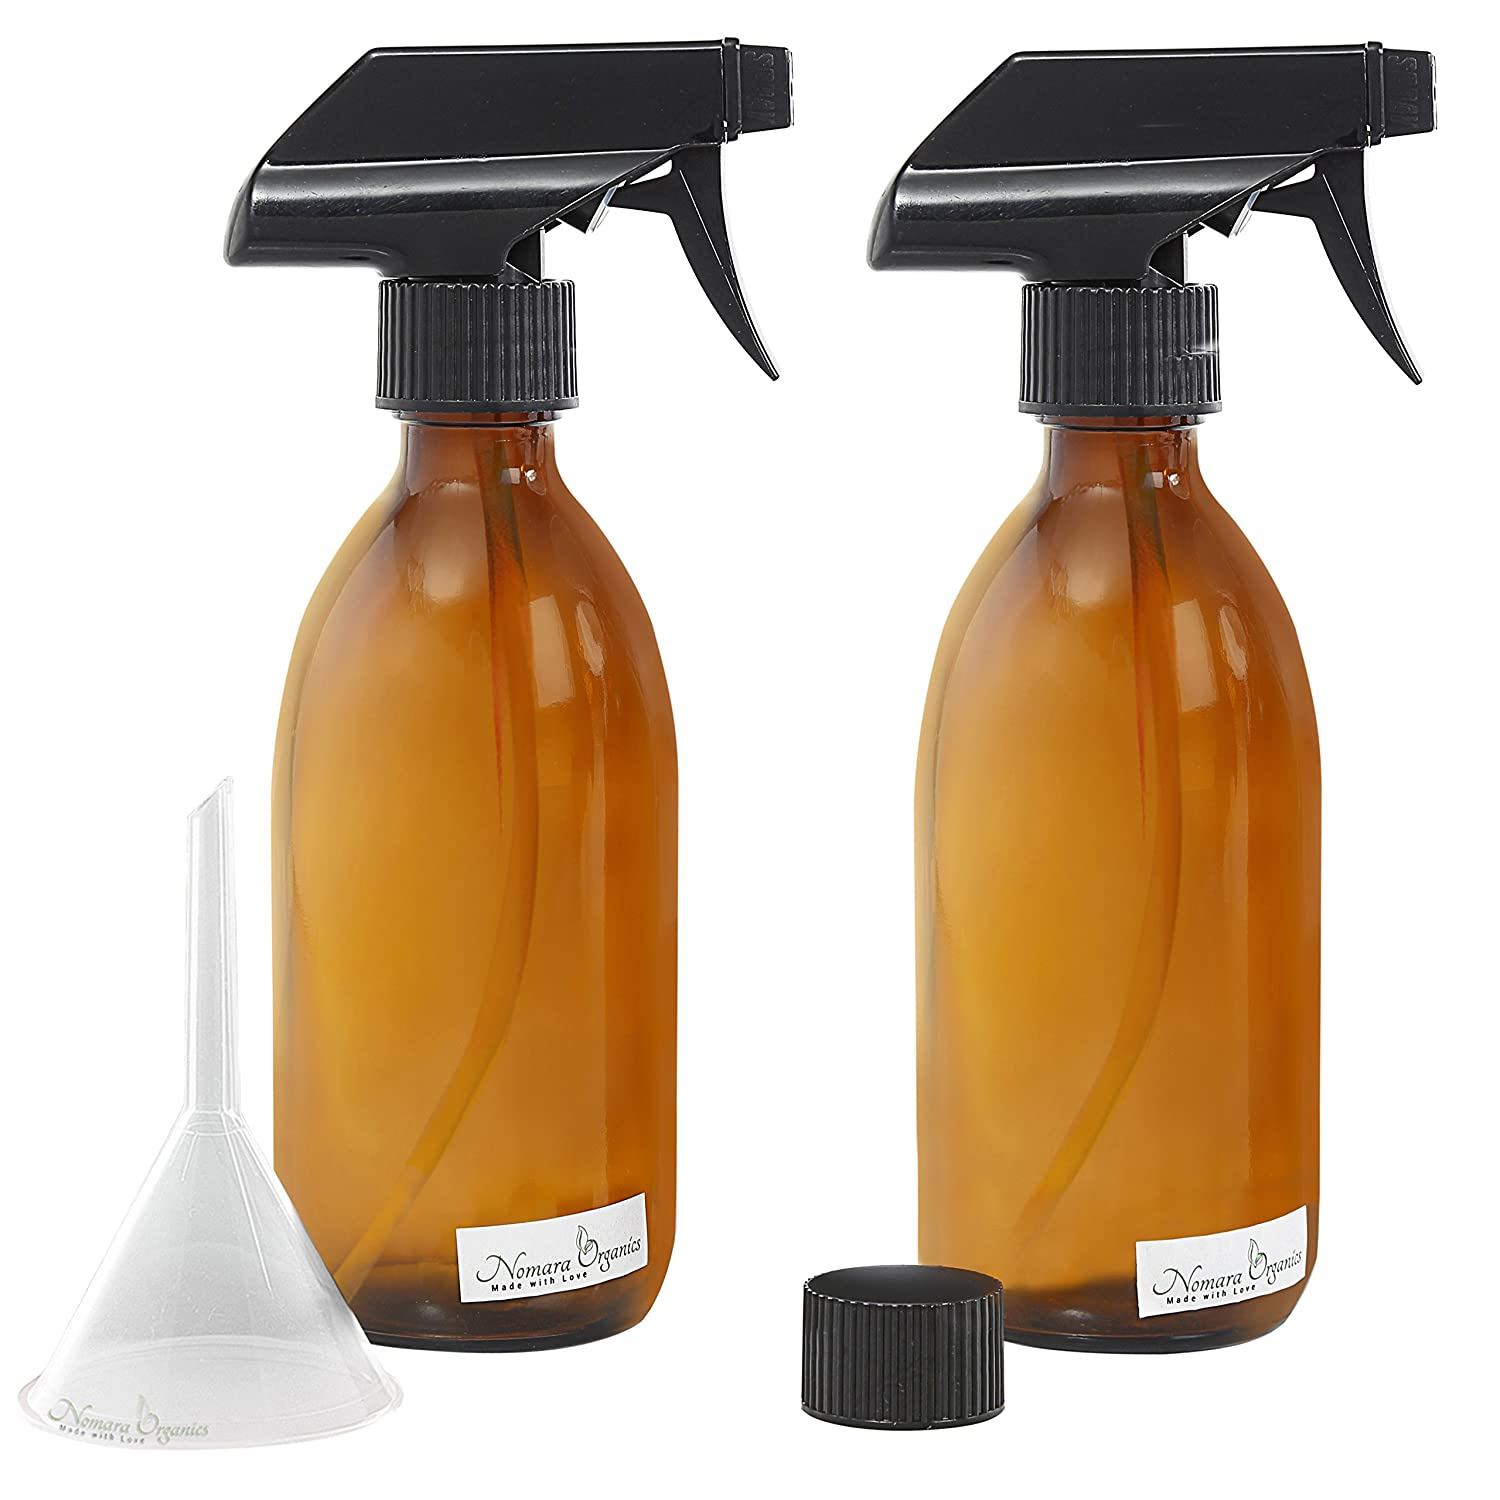 4pc Premium Quality AMBER GLASS SPRAY BOTTLE SET 300 ML by Nomara Organics: A 4pcs set includes: 2 spray bottles with Fine Mist Spray Trigger +1 x BPA Free Transfer Funnel & 1 x Screw cap. Empty, Re-usable Bottles for Organic Beauty/Skin Care Products